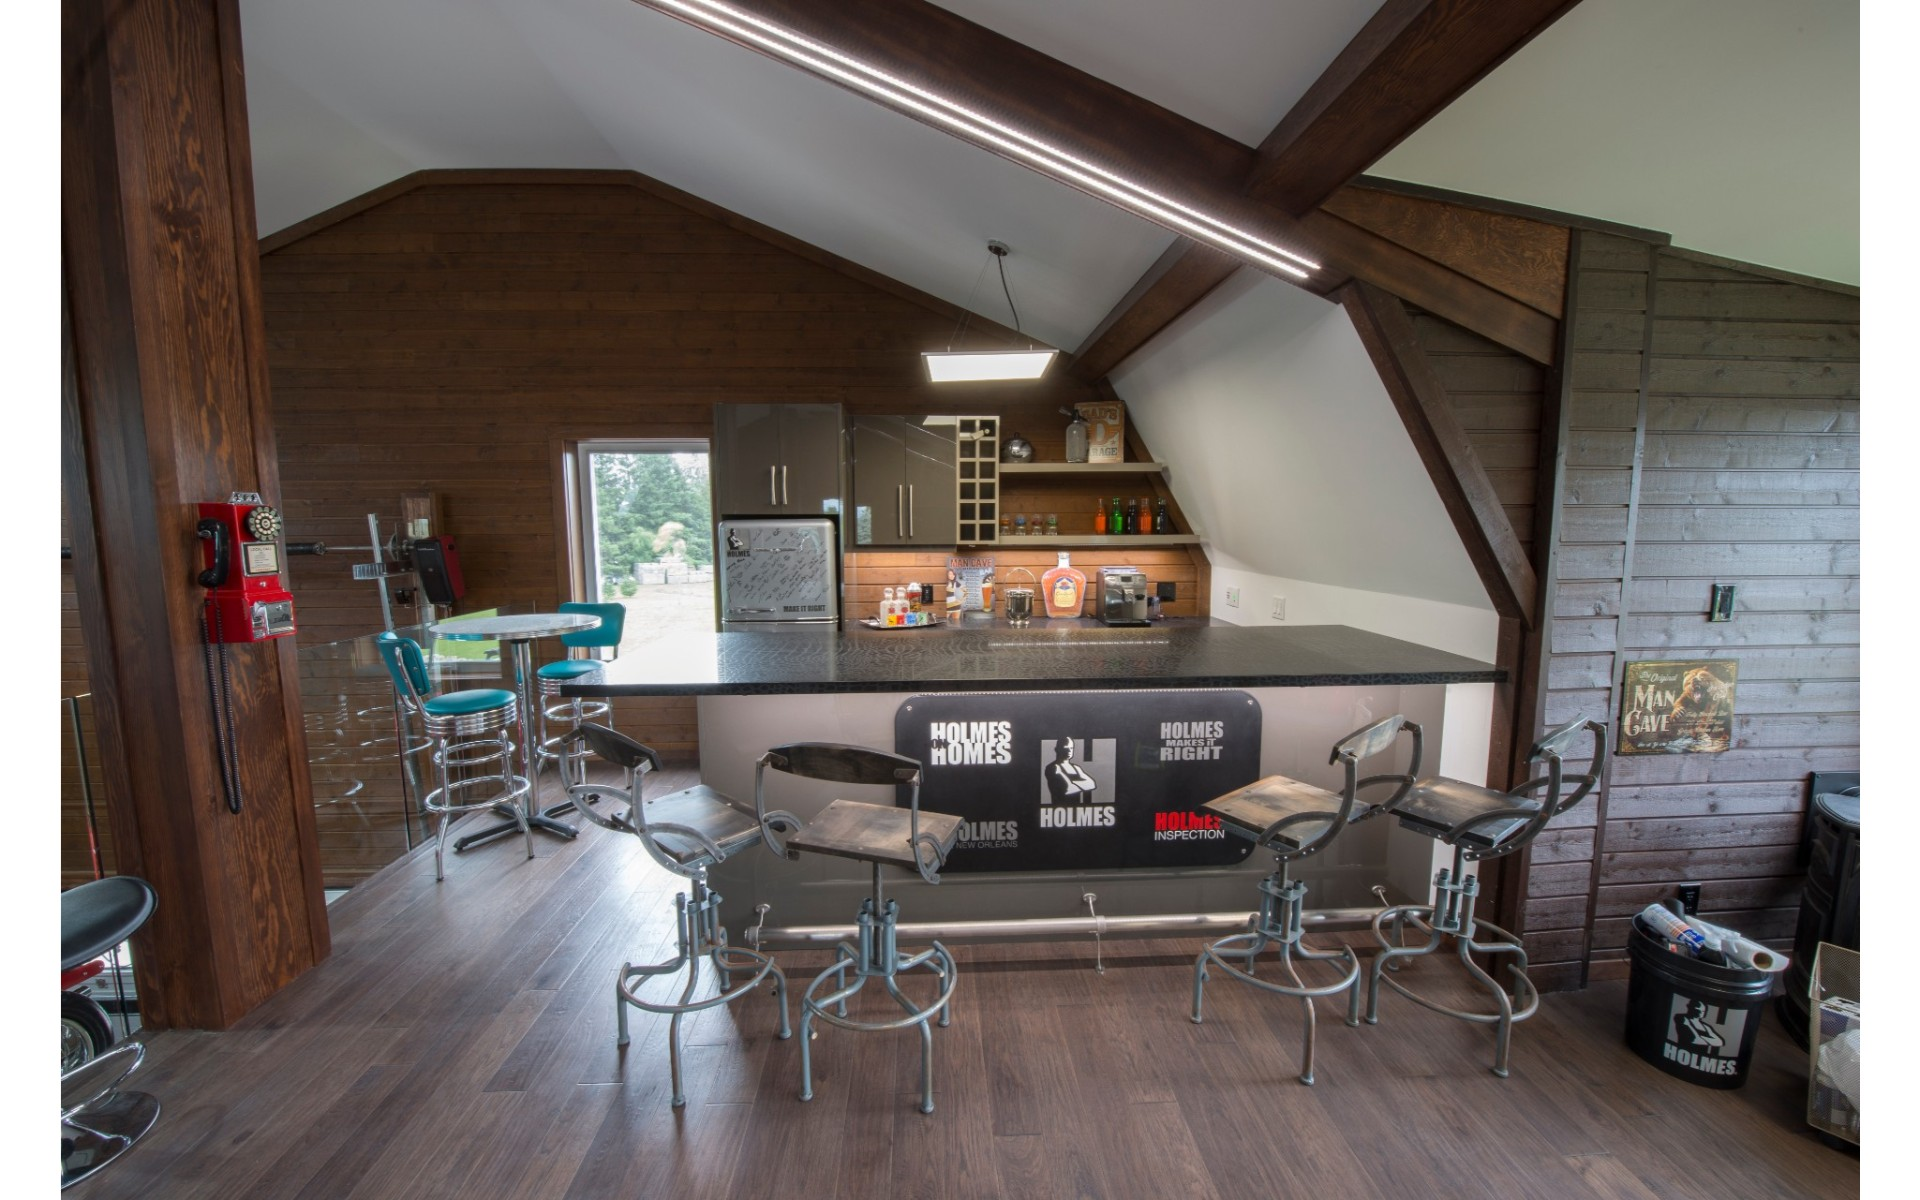 Kitchen with vaulted ceilings and bar style countertop